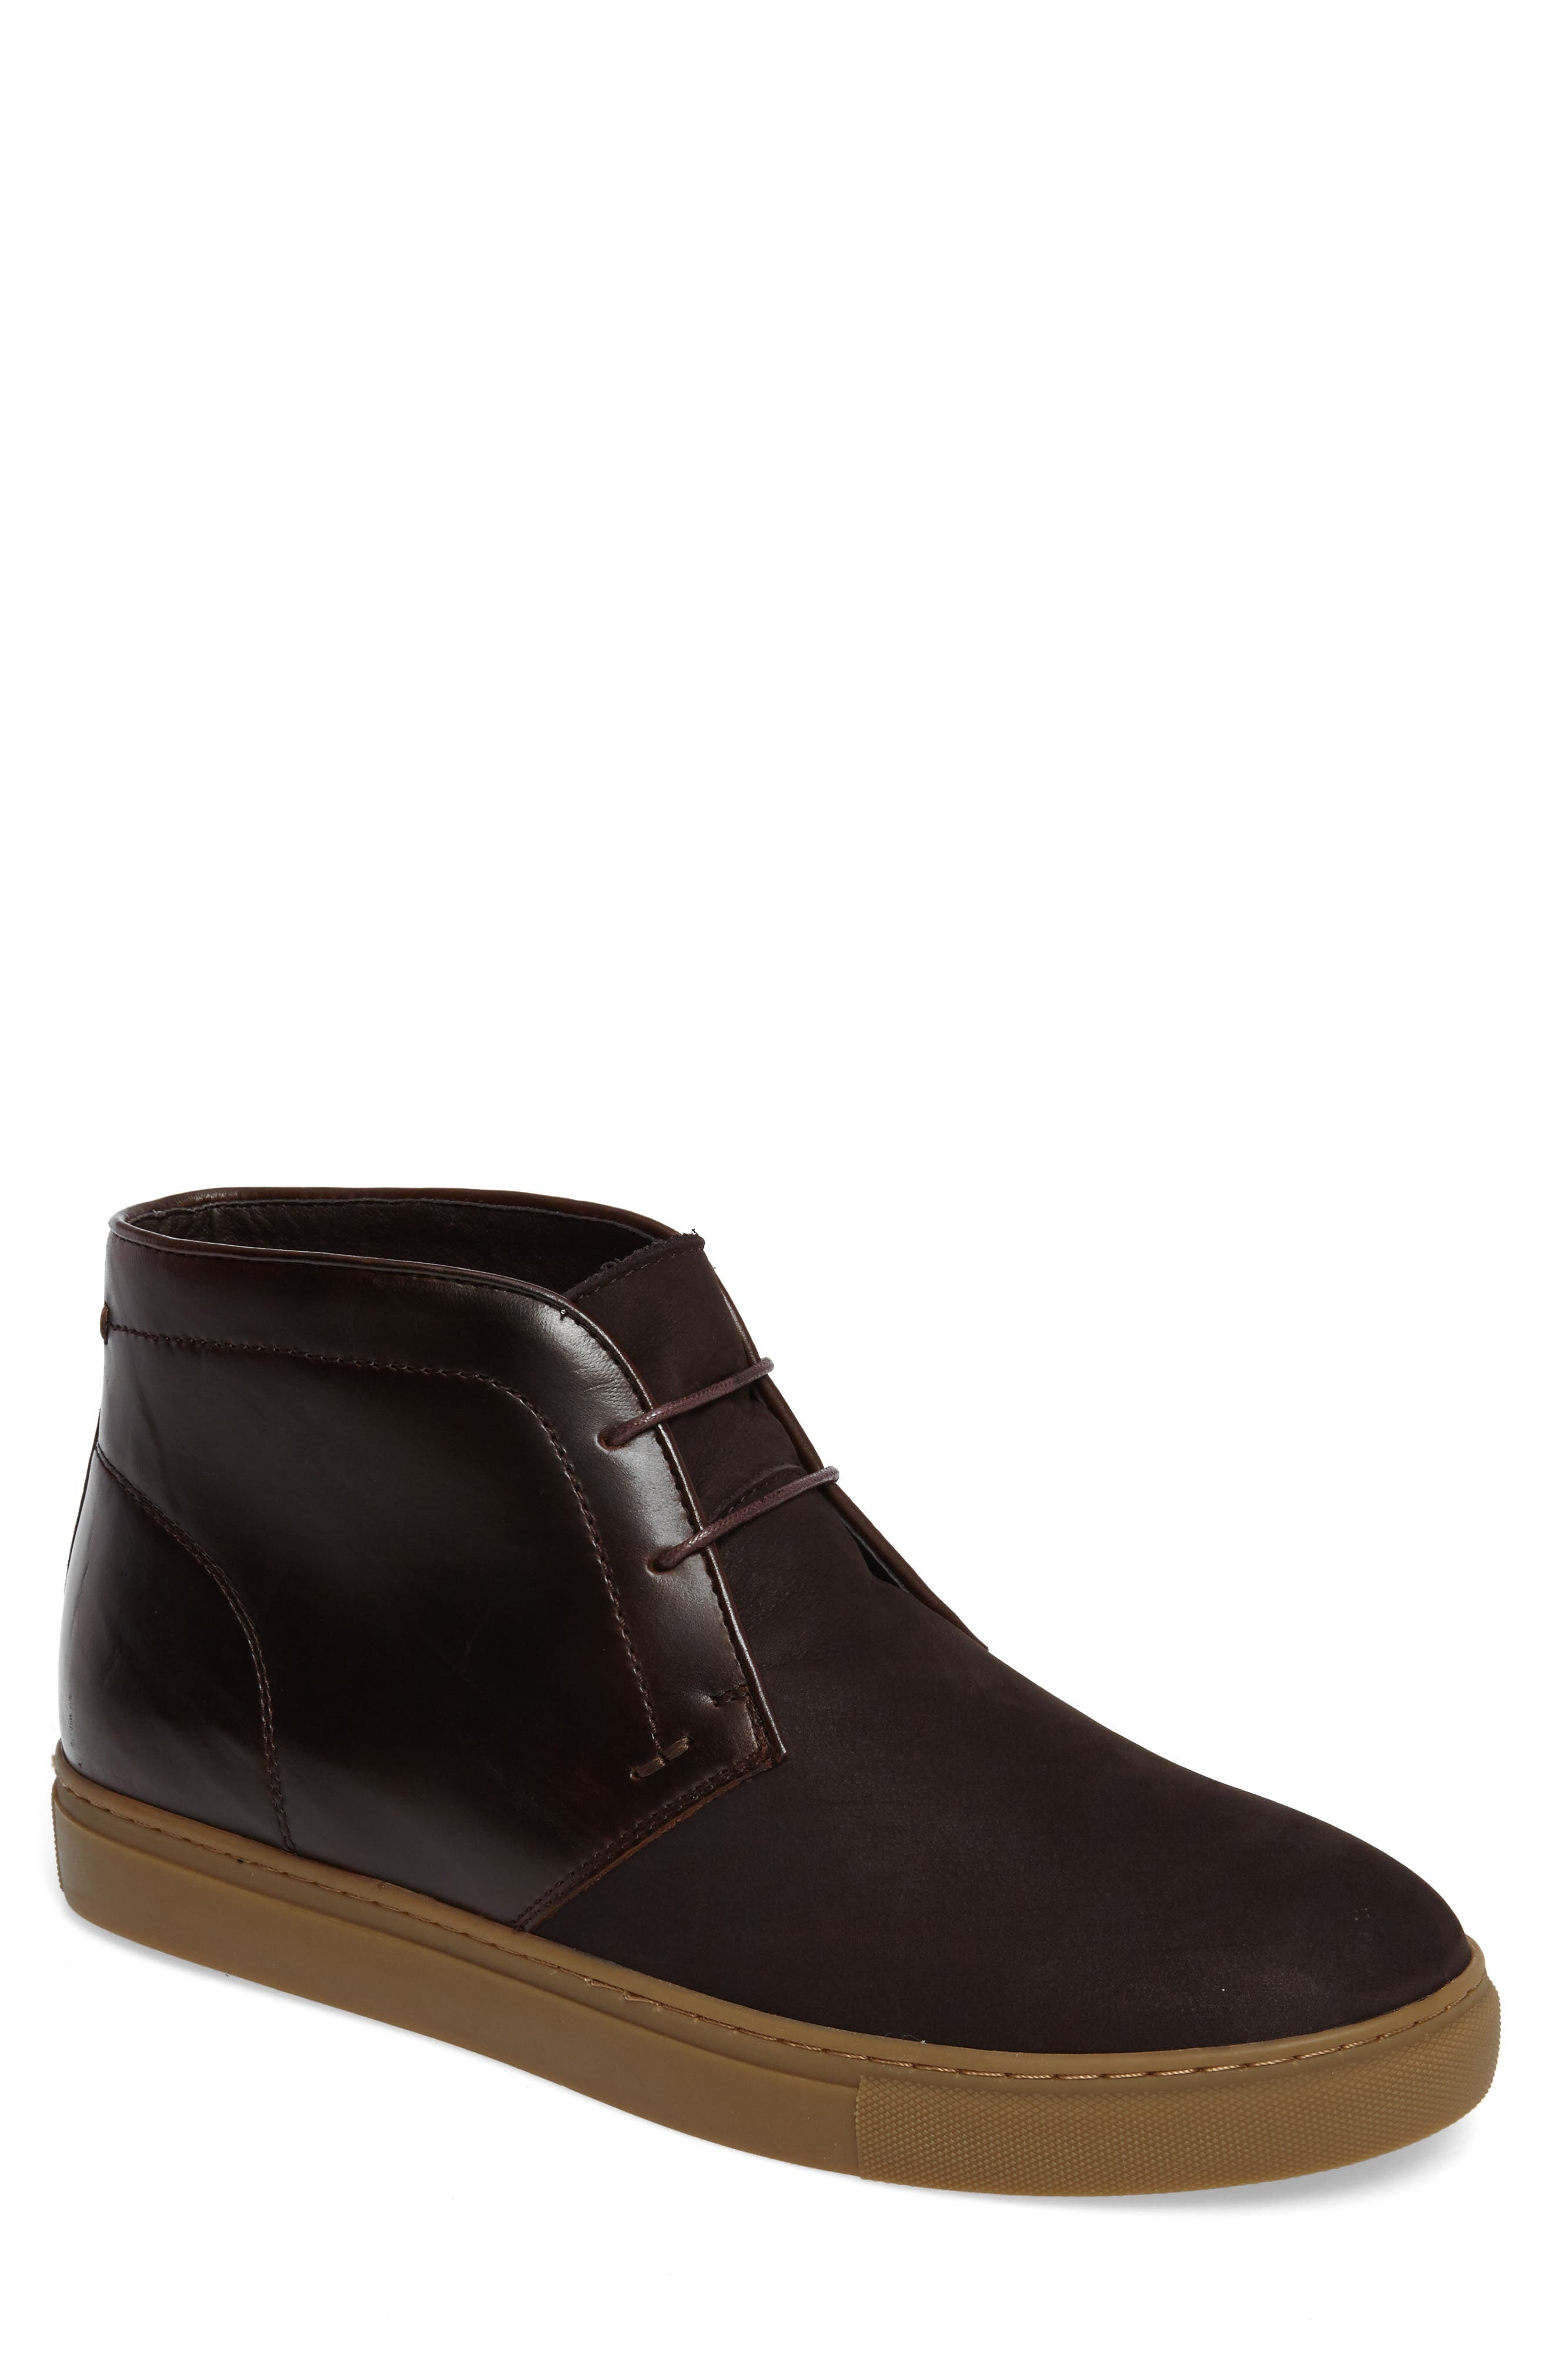 Laxey Mid Sneaker,                             Main thumbnail 1, color,                             Brown